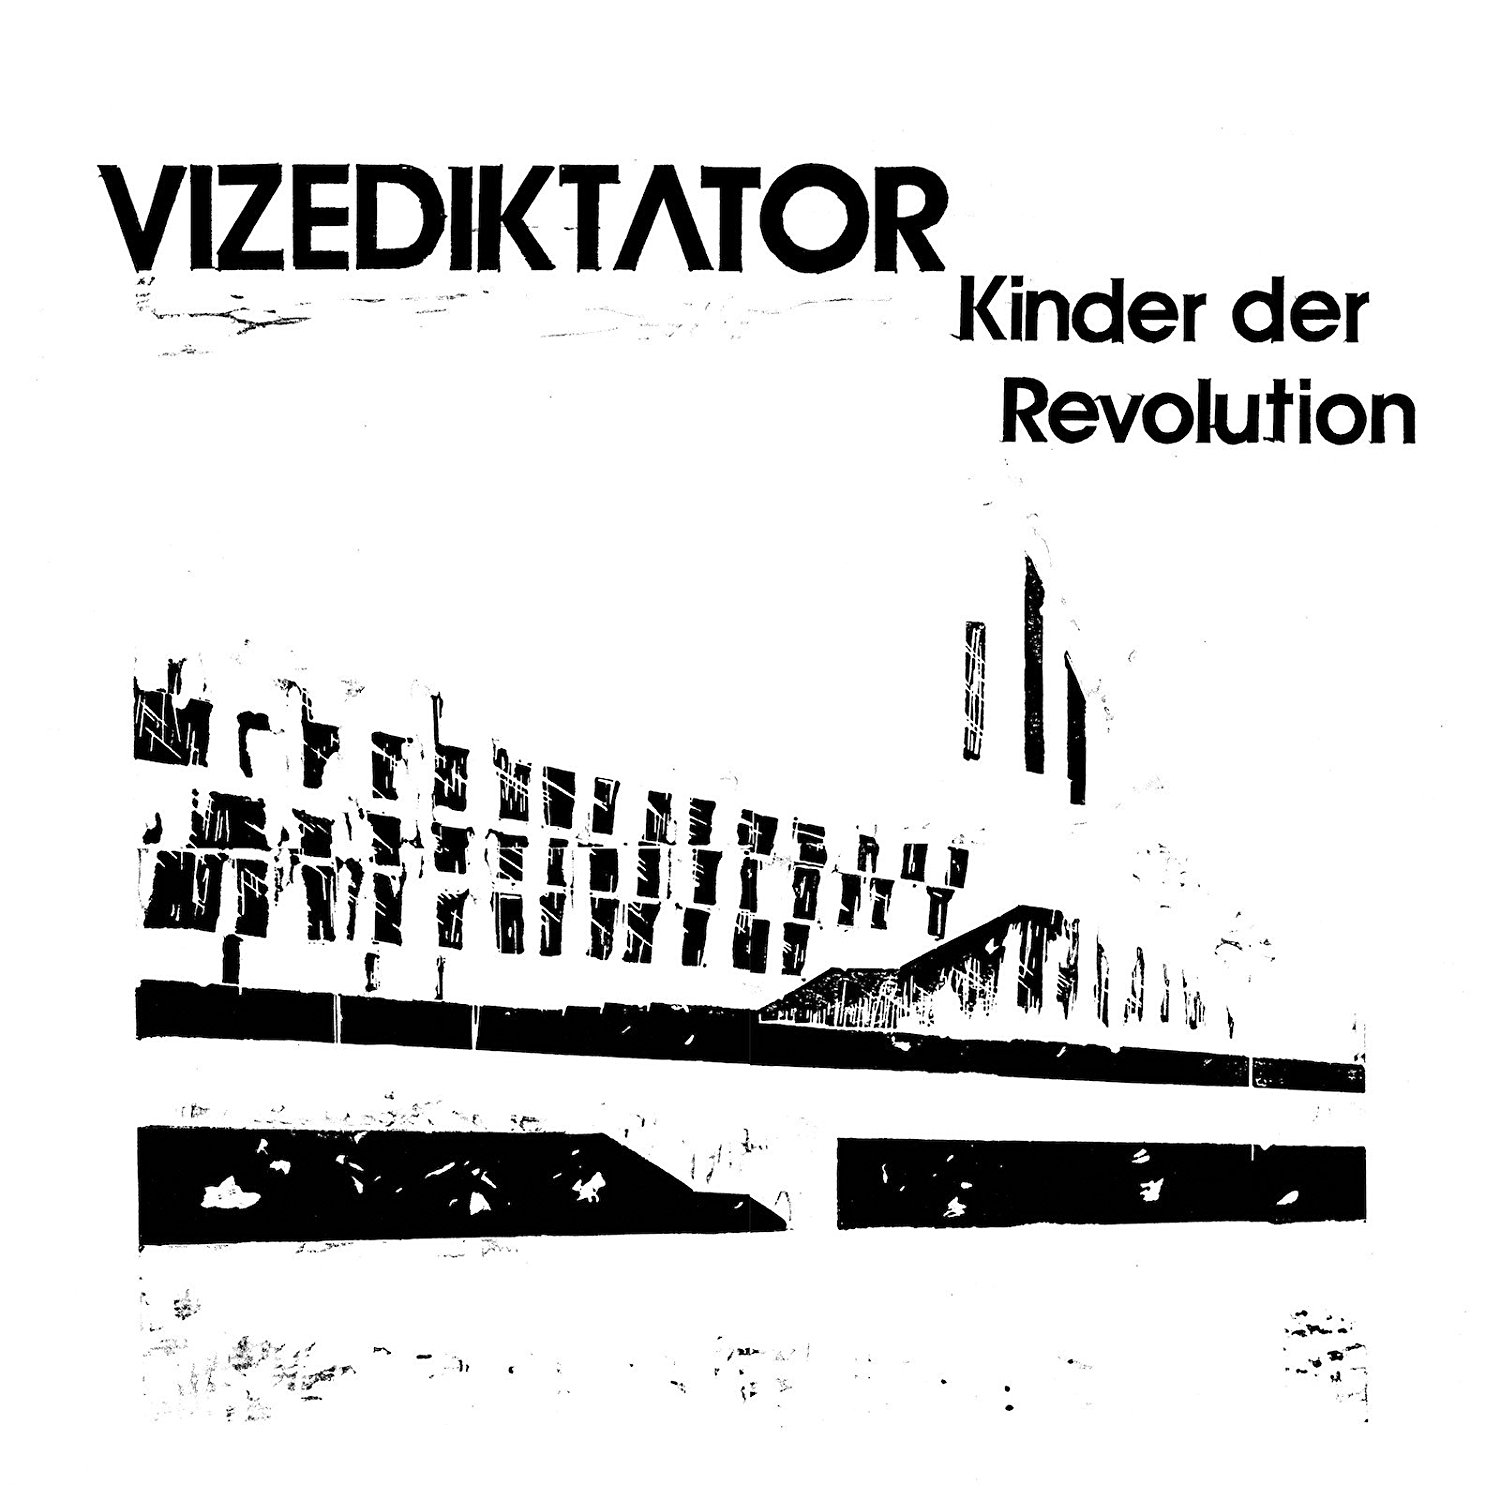 Vizediktator: Kinder der Revolution (2018) Book Cover